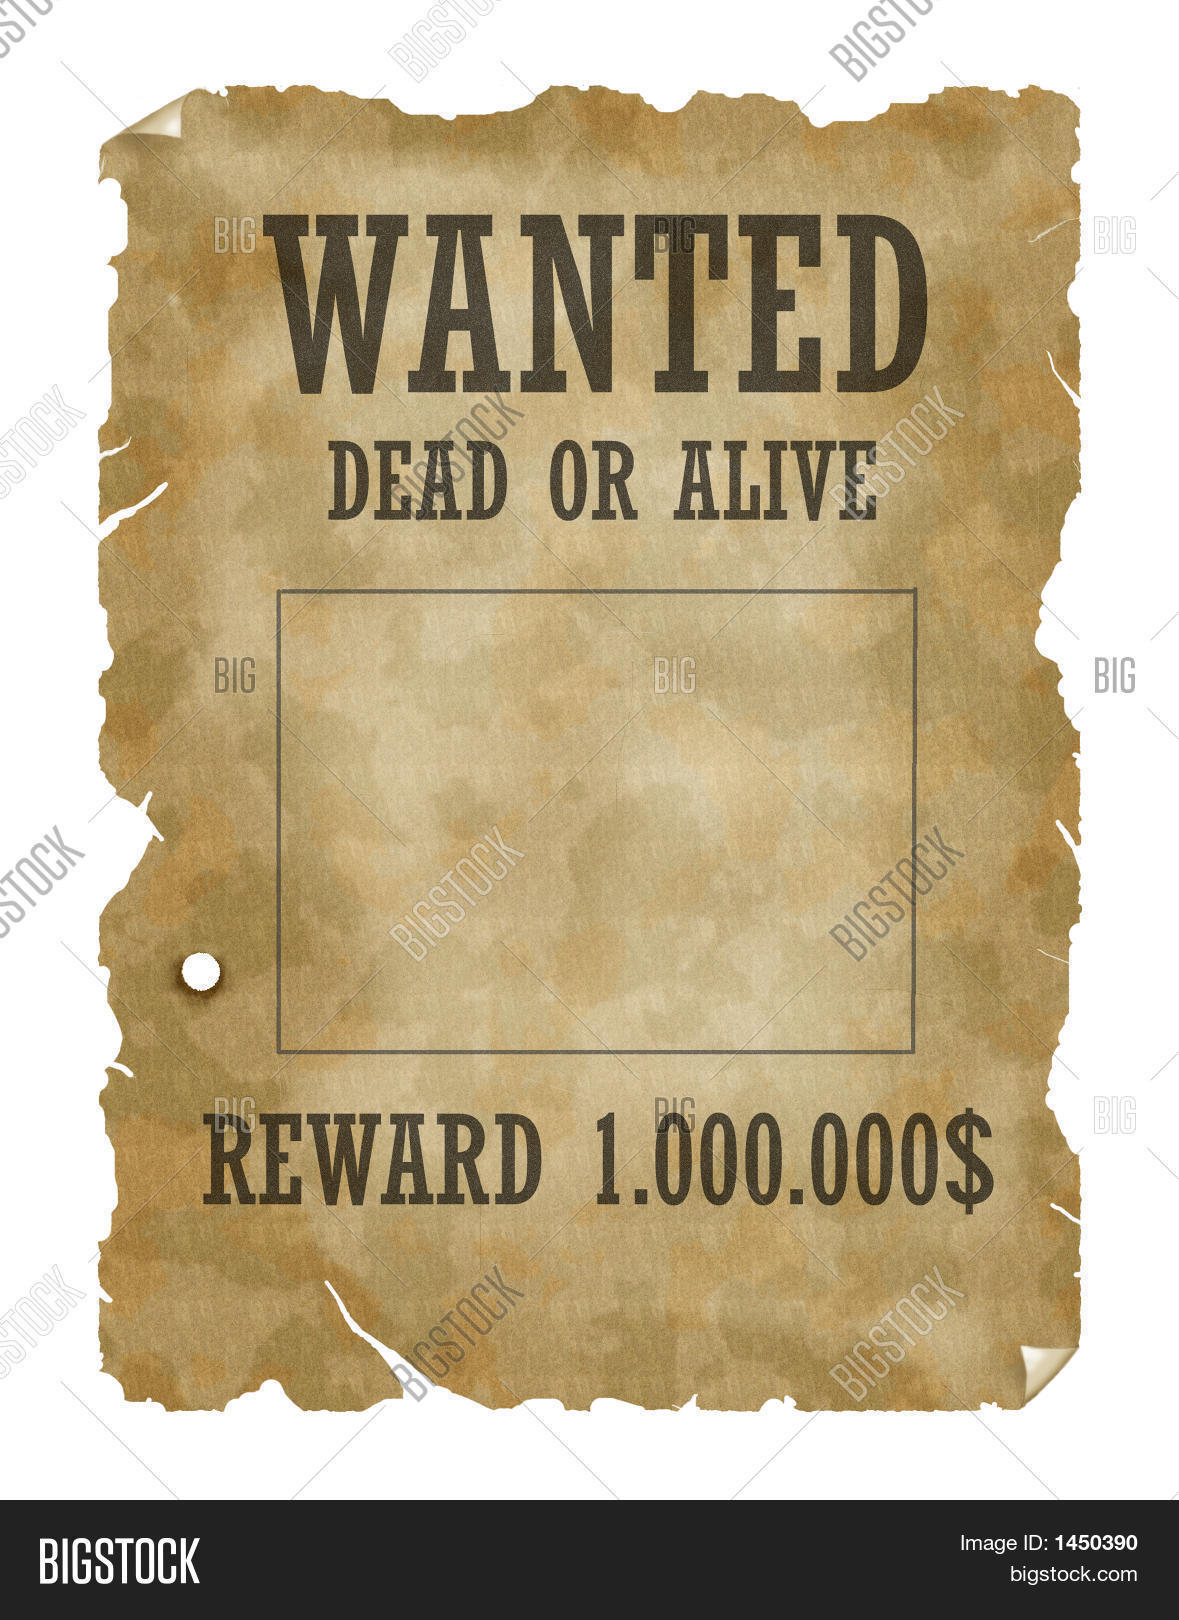 Reward If Found Template Pictures to Pin PinsDaddy – Missing Reward Poster Template